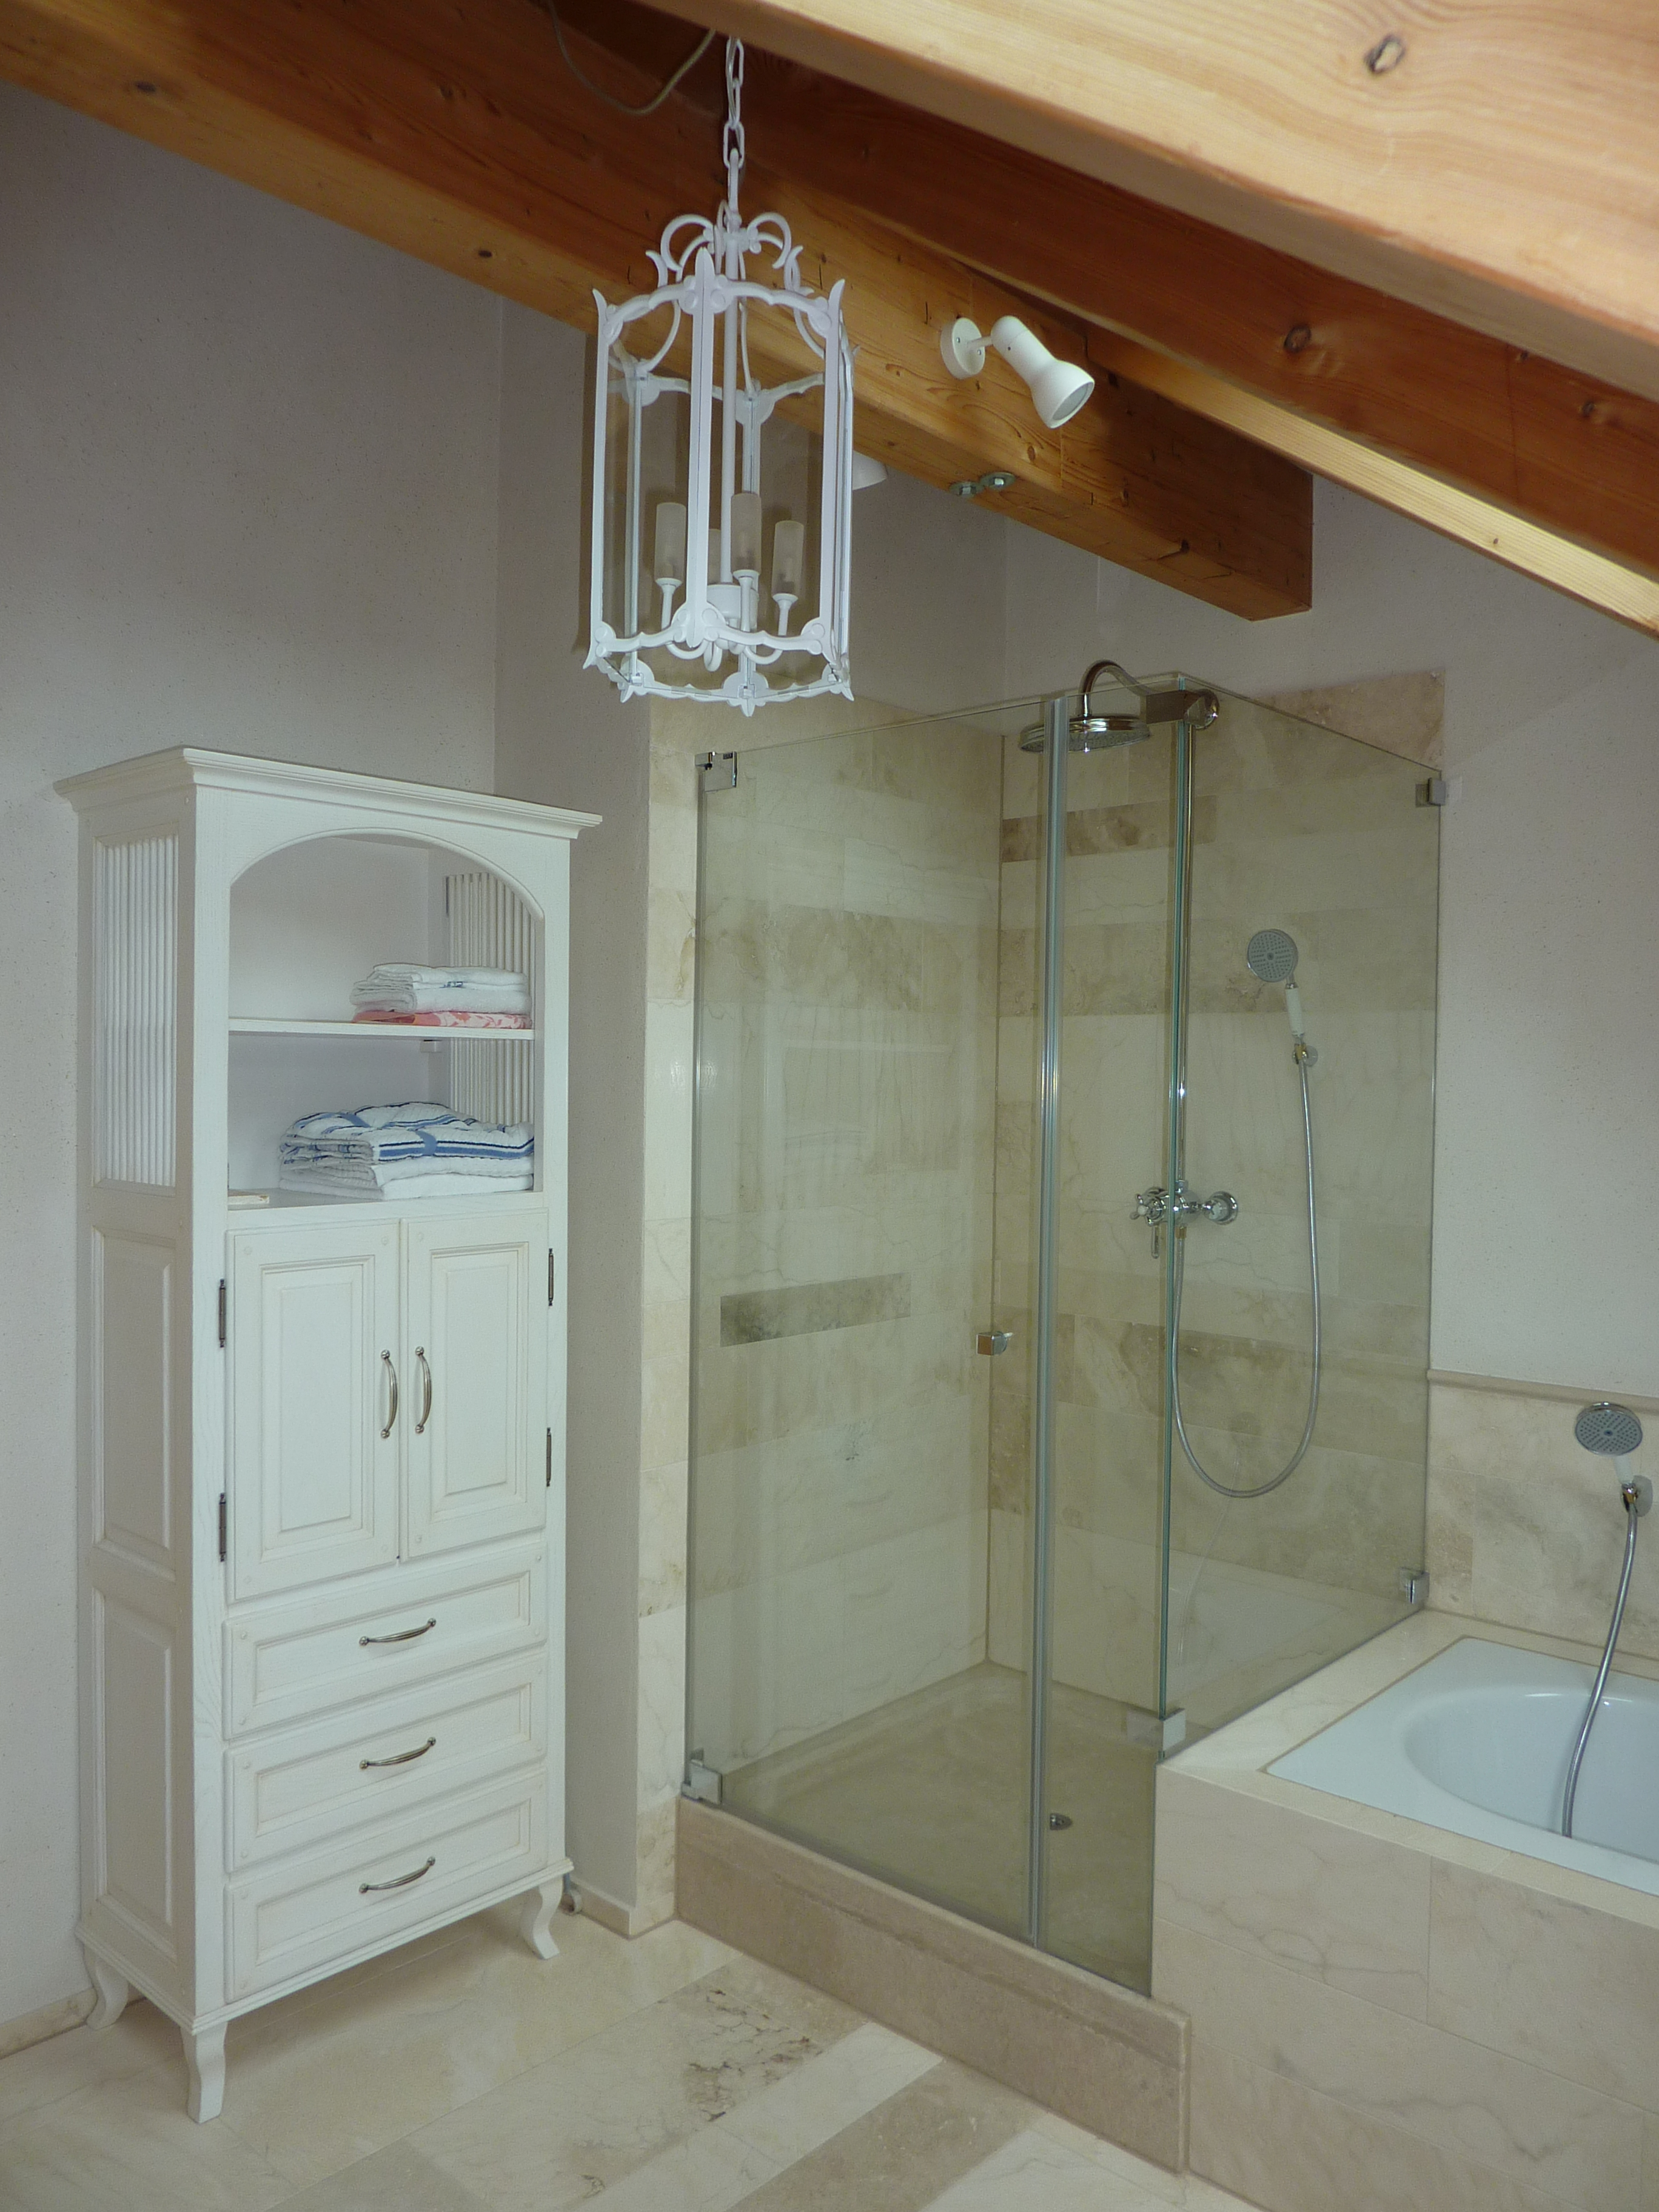 Shabby chic bagno garden house lazzerini - Bagno shabby chic moderno ...